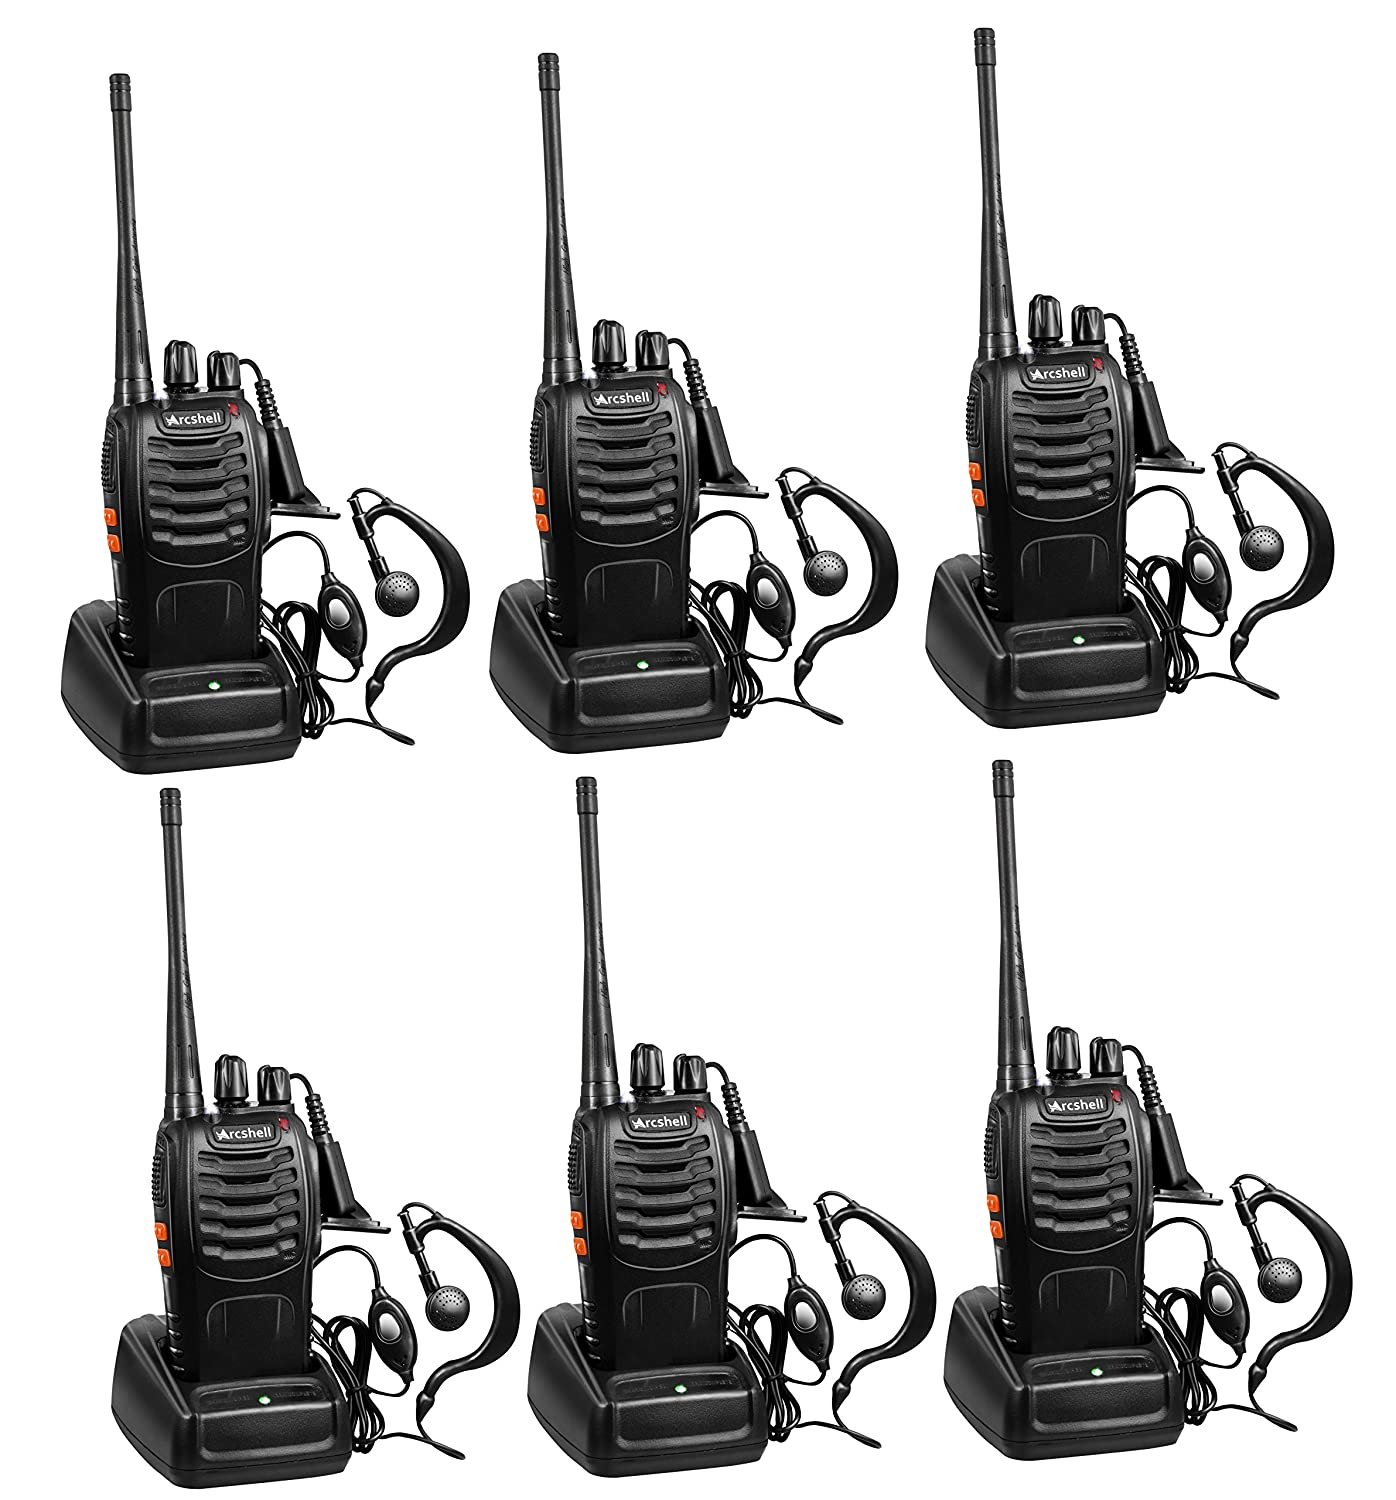 Arcshell Rechargeable Long Range Two-Way Radios with Earpiece 6 Pack UHF 400-470Mhz Walkie Talkies Li-ion Battery and Charger Included